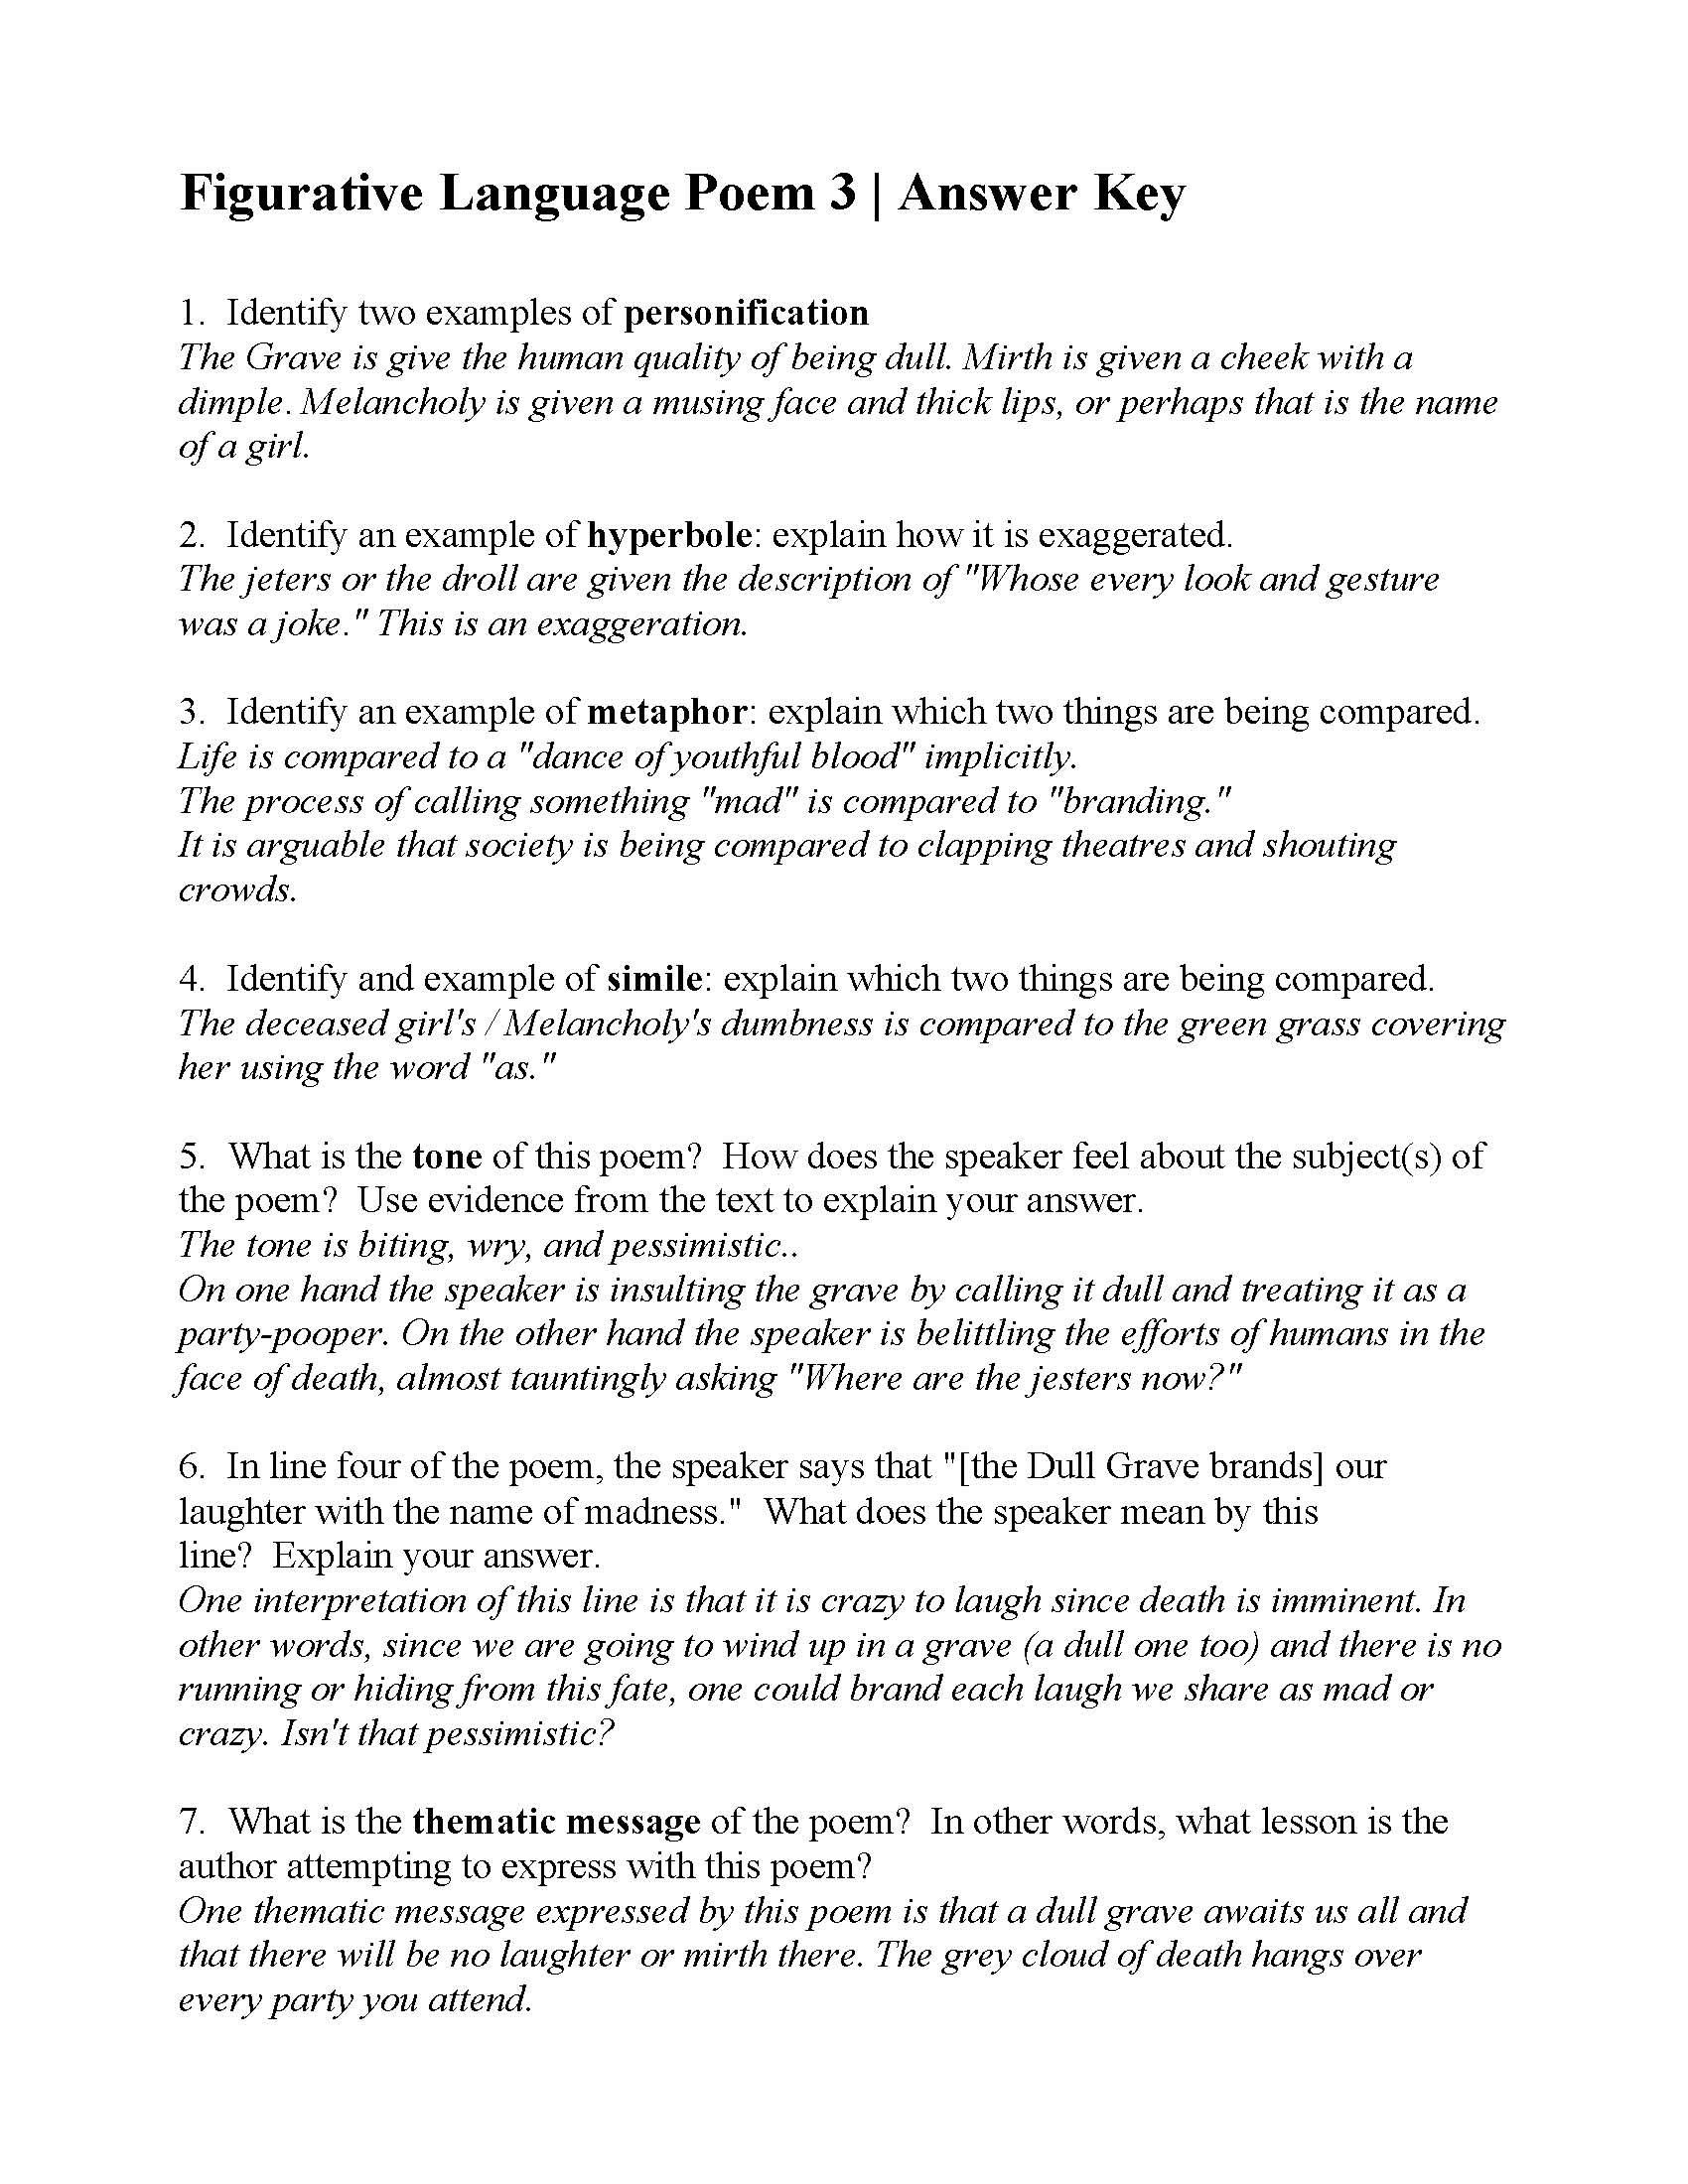 Personification Worksheets 6th Grade This is the Answer Key for the Figurative Language Poem 3